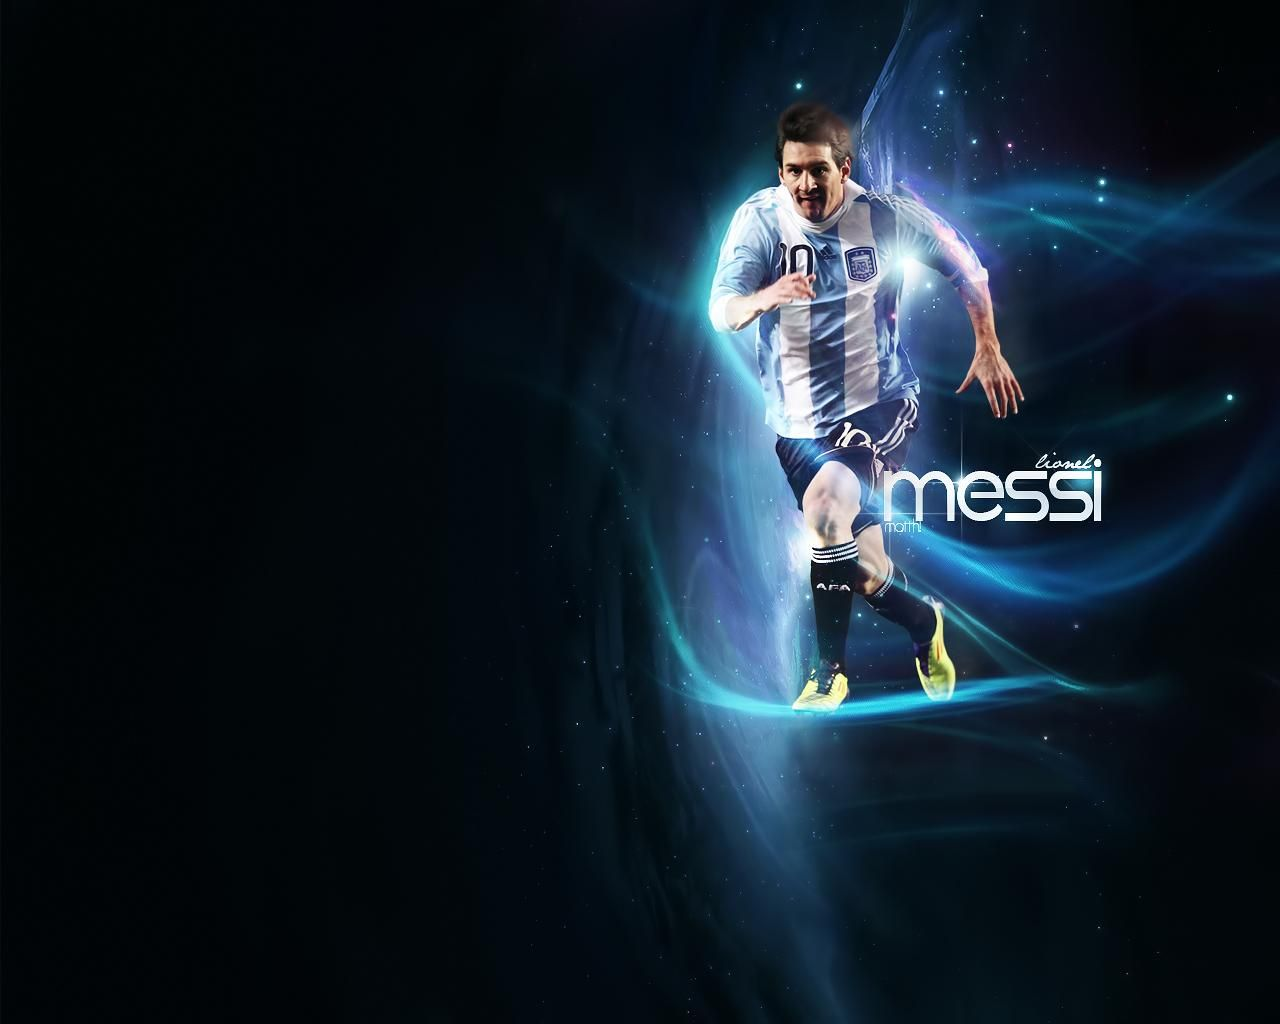 Lionel Messi P Hd Wallpapers Wallpaper 1920 1080 Messi Hd Wallpaper 64 Wallpapers Adorable Wallpapers Lionel Messi Wallpapers Lionel Messi Messi